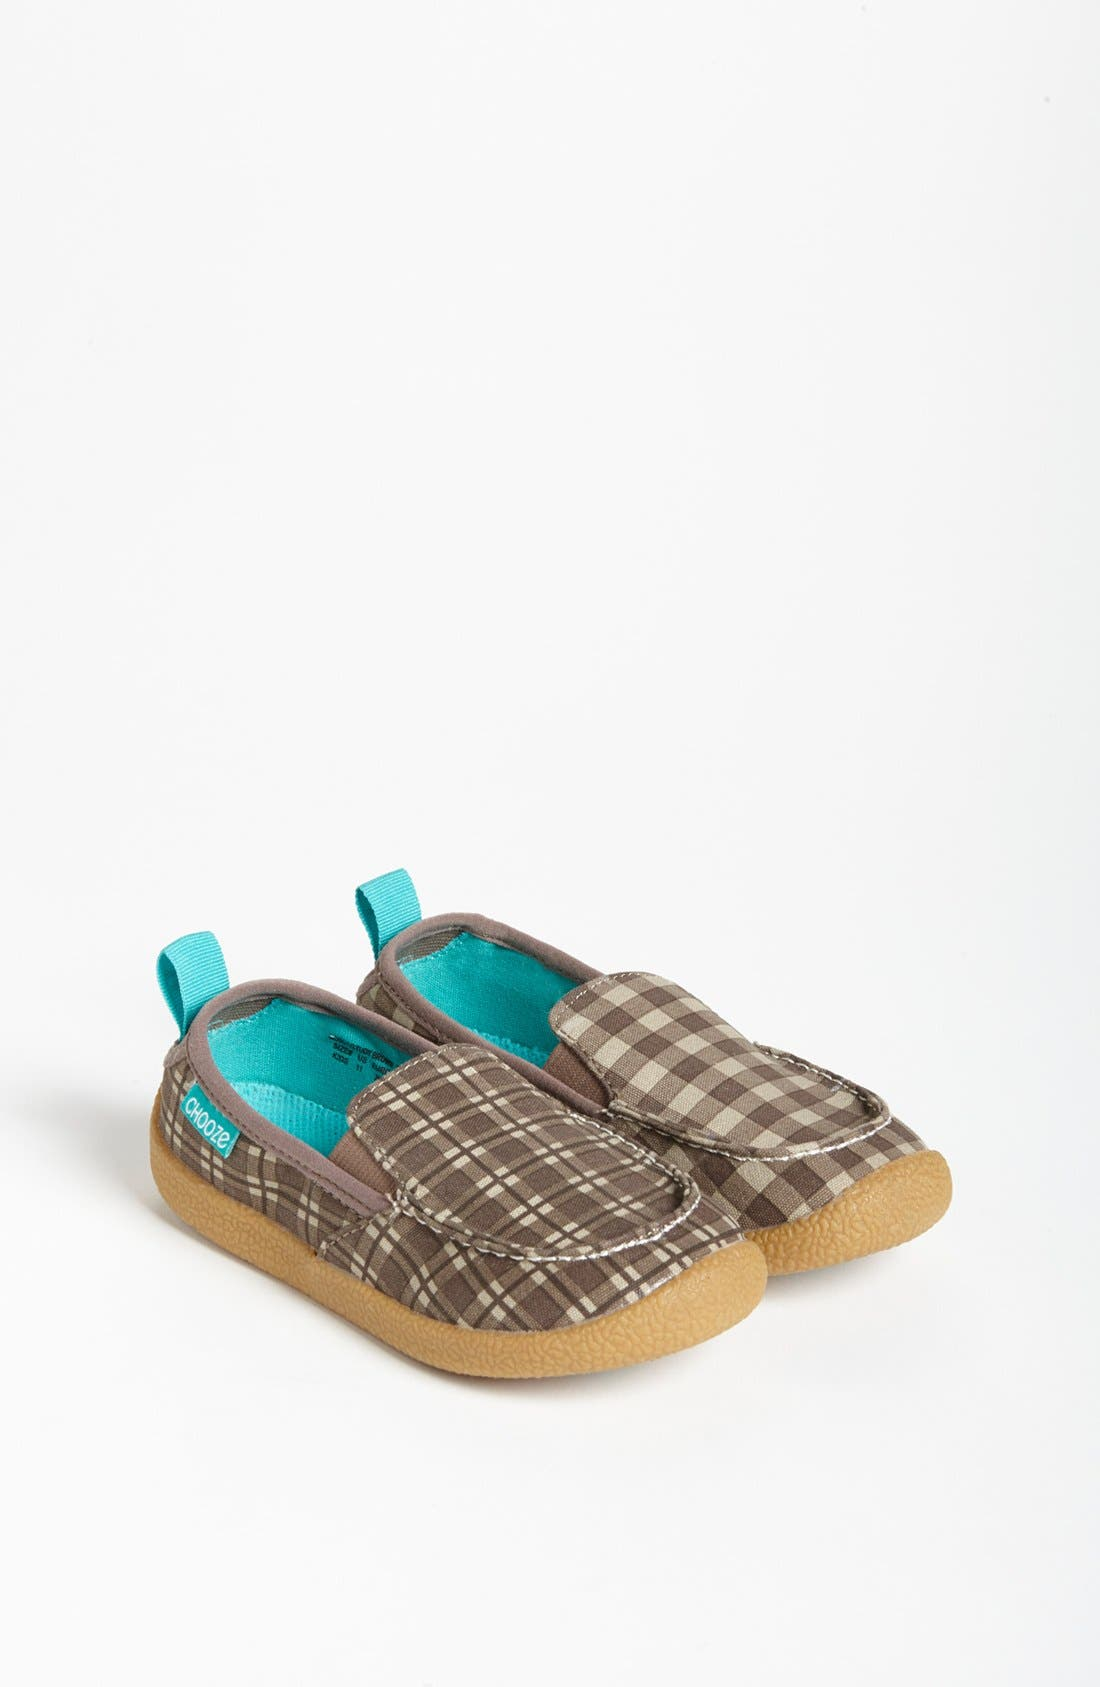 Main Image - CHOOZE 'Scout - Study Brown' Slip-On Loafer (Toddler, Little Kid & Big Kid)